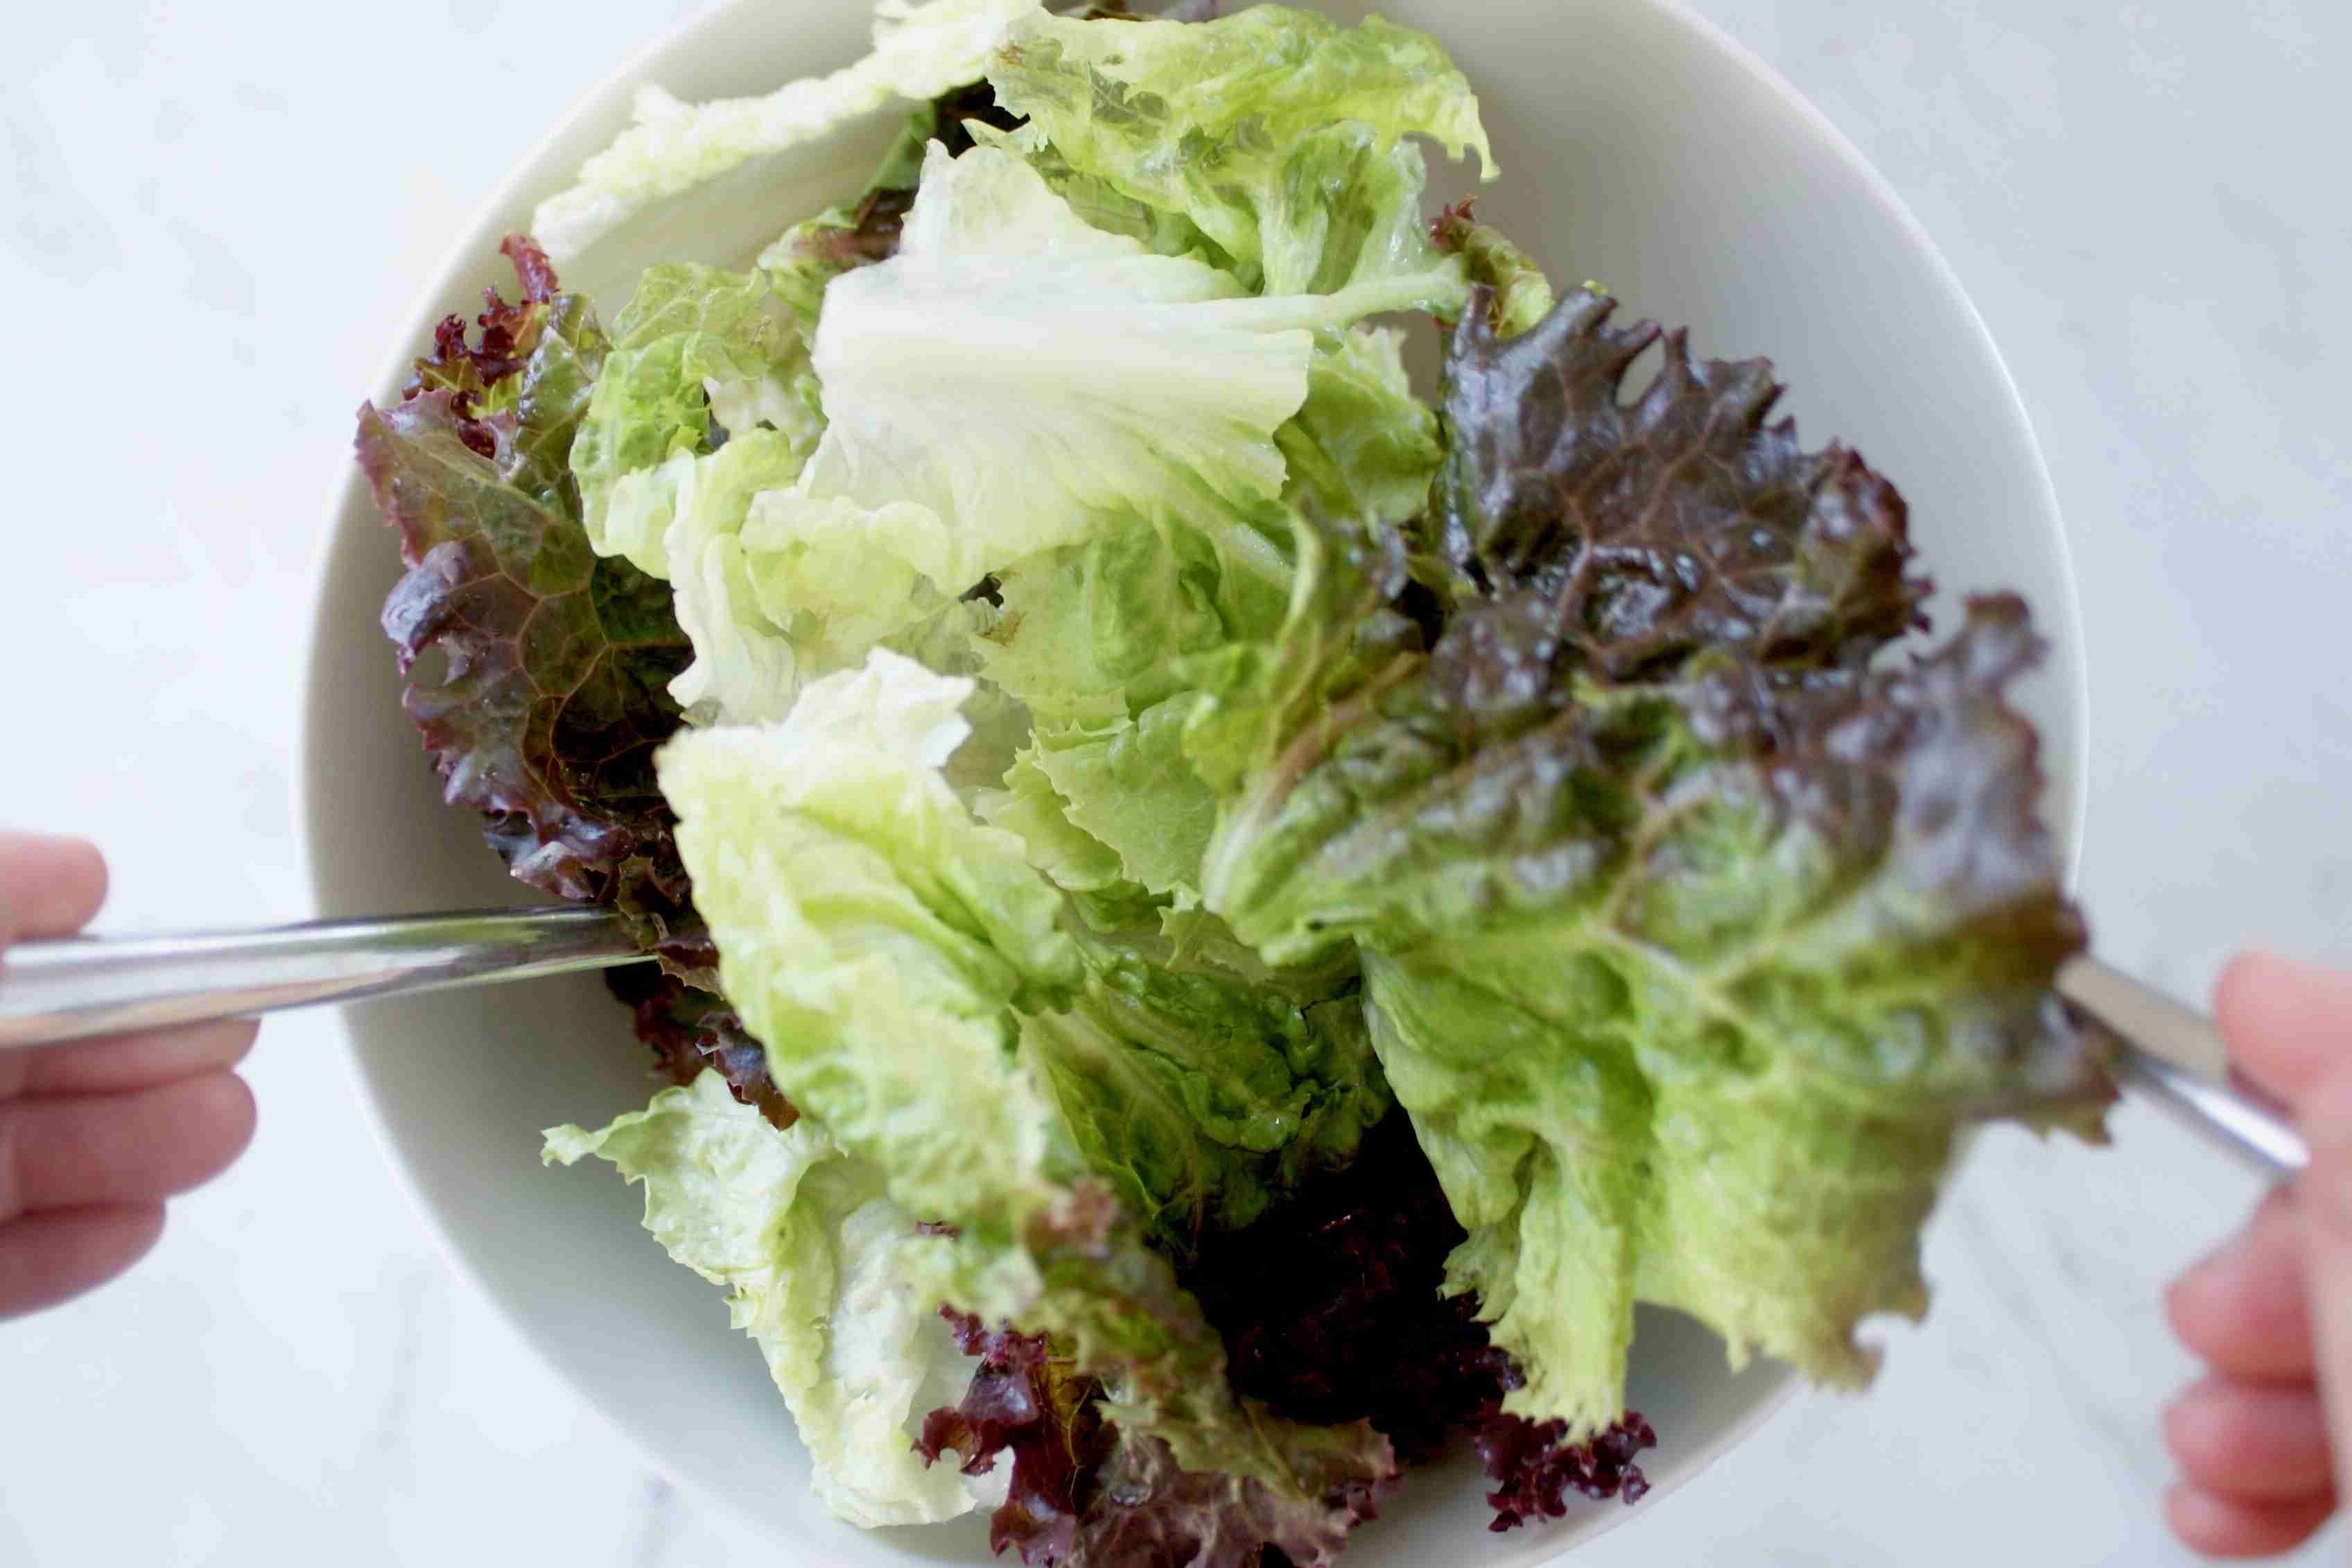 Dressing a salad with tongs